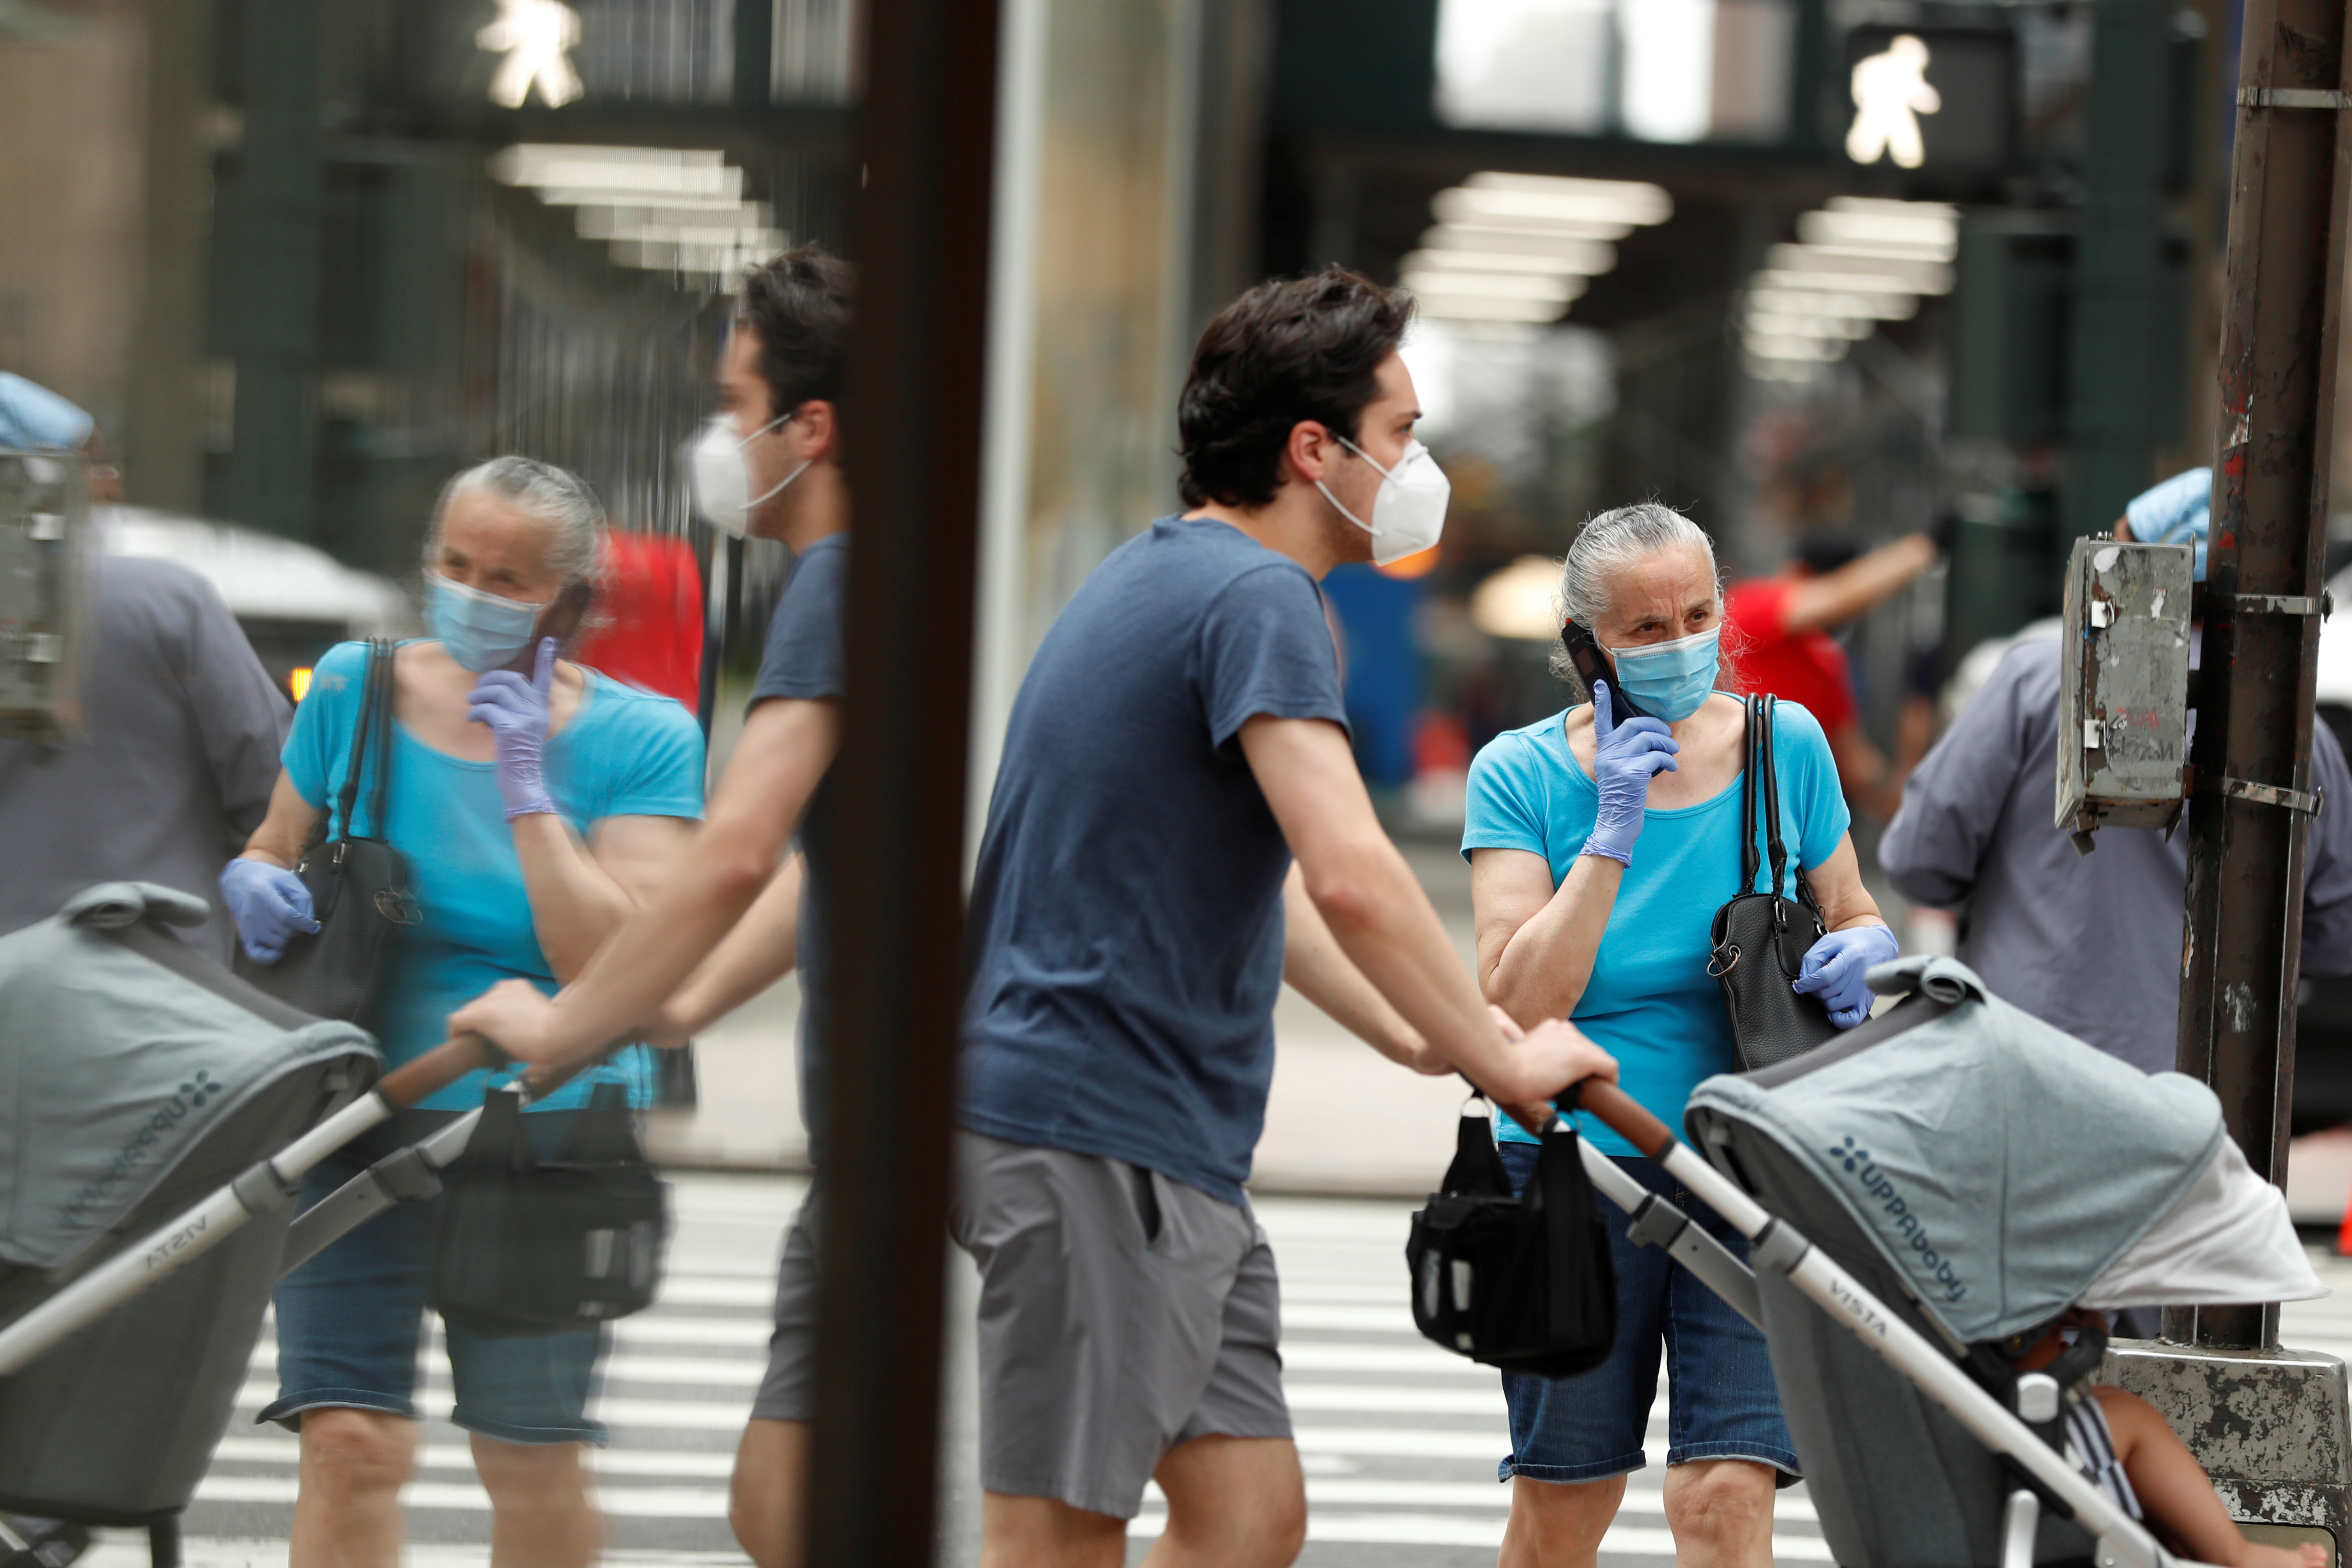 Pedestrians wearing masks walk down the sidewalk  in the Manhattan borough of New York City, U.S., July 1, 2020. REUTERS/Lucas Jackson - RC2HKH9FN7CB